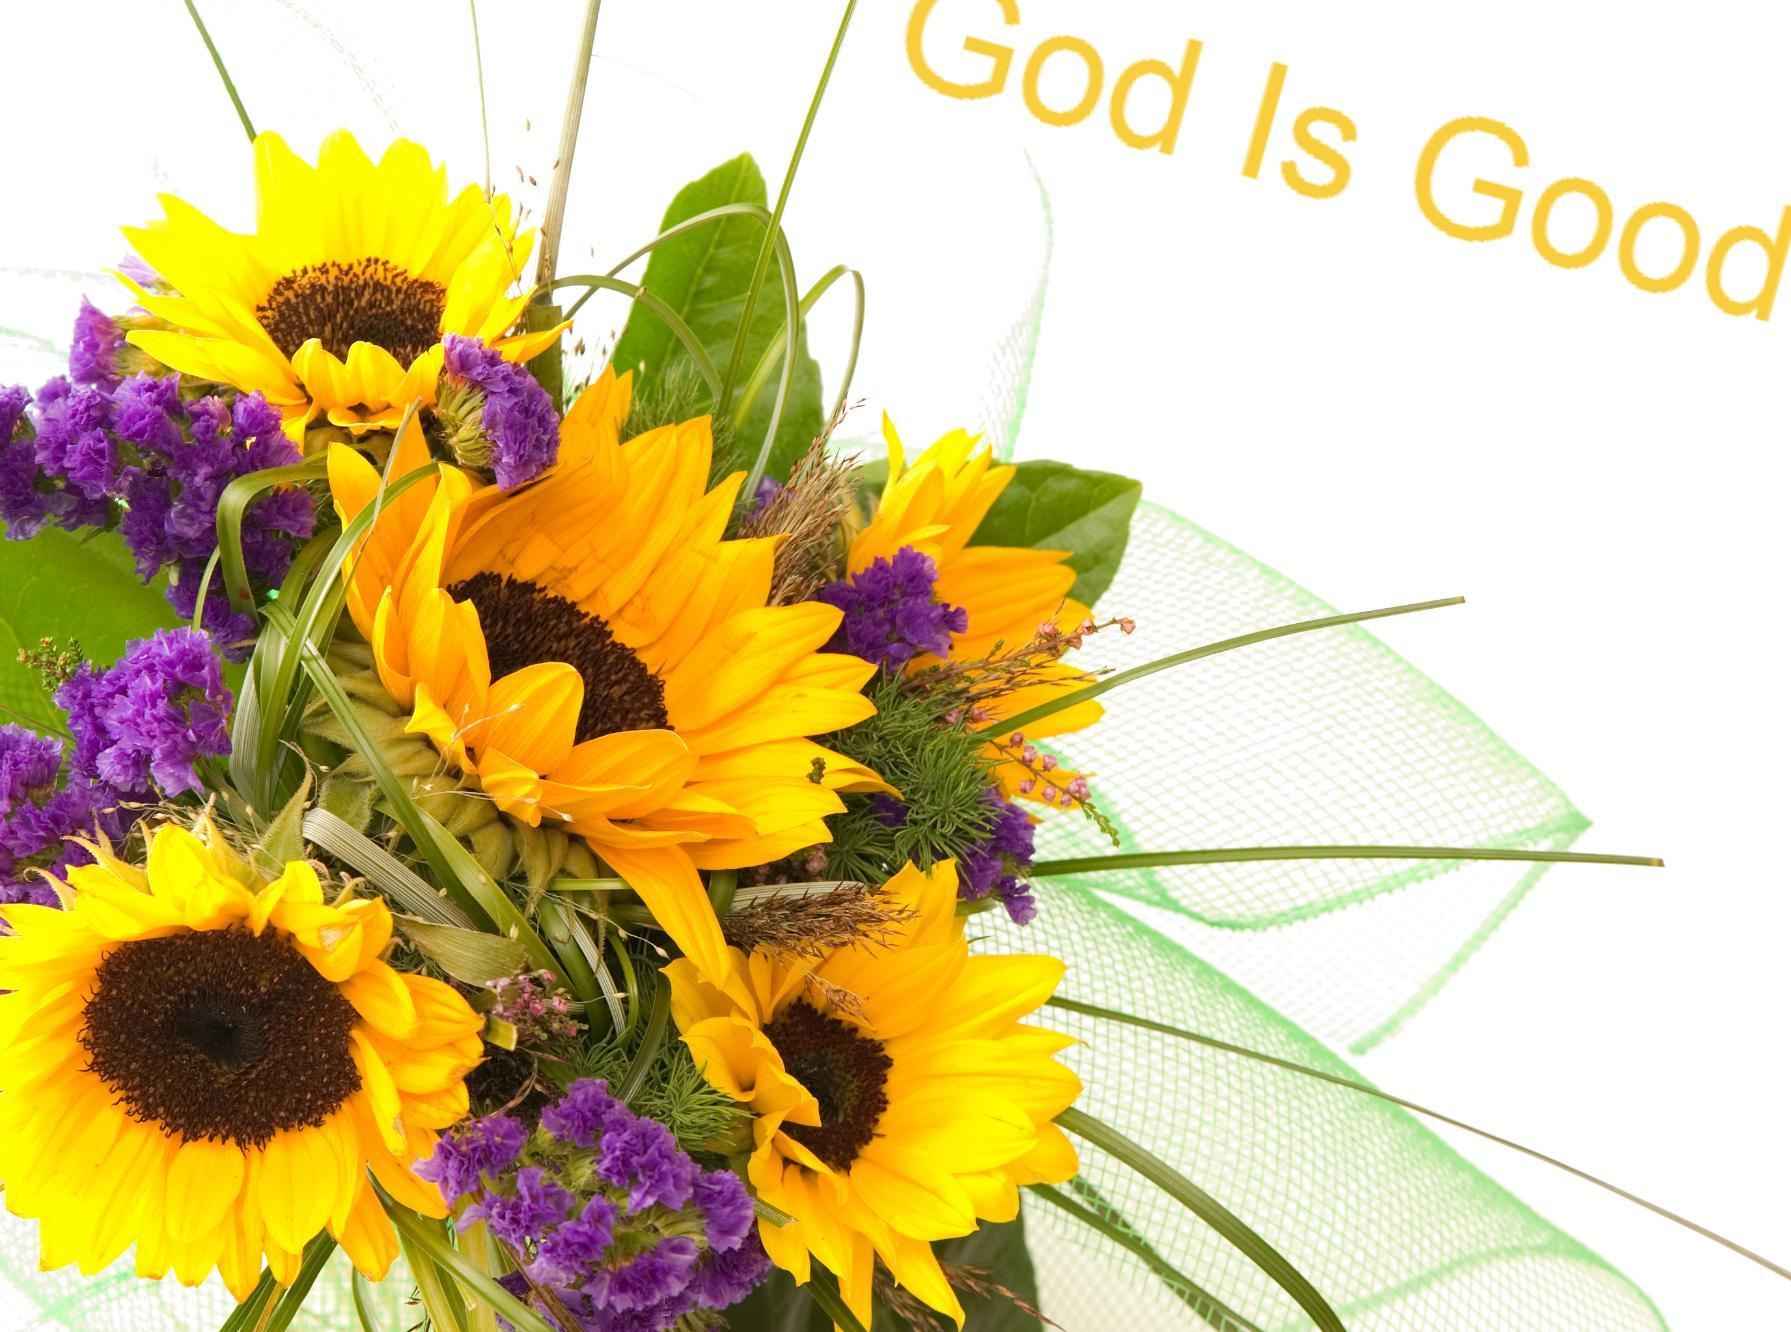 God is good inscription on a flower